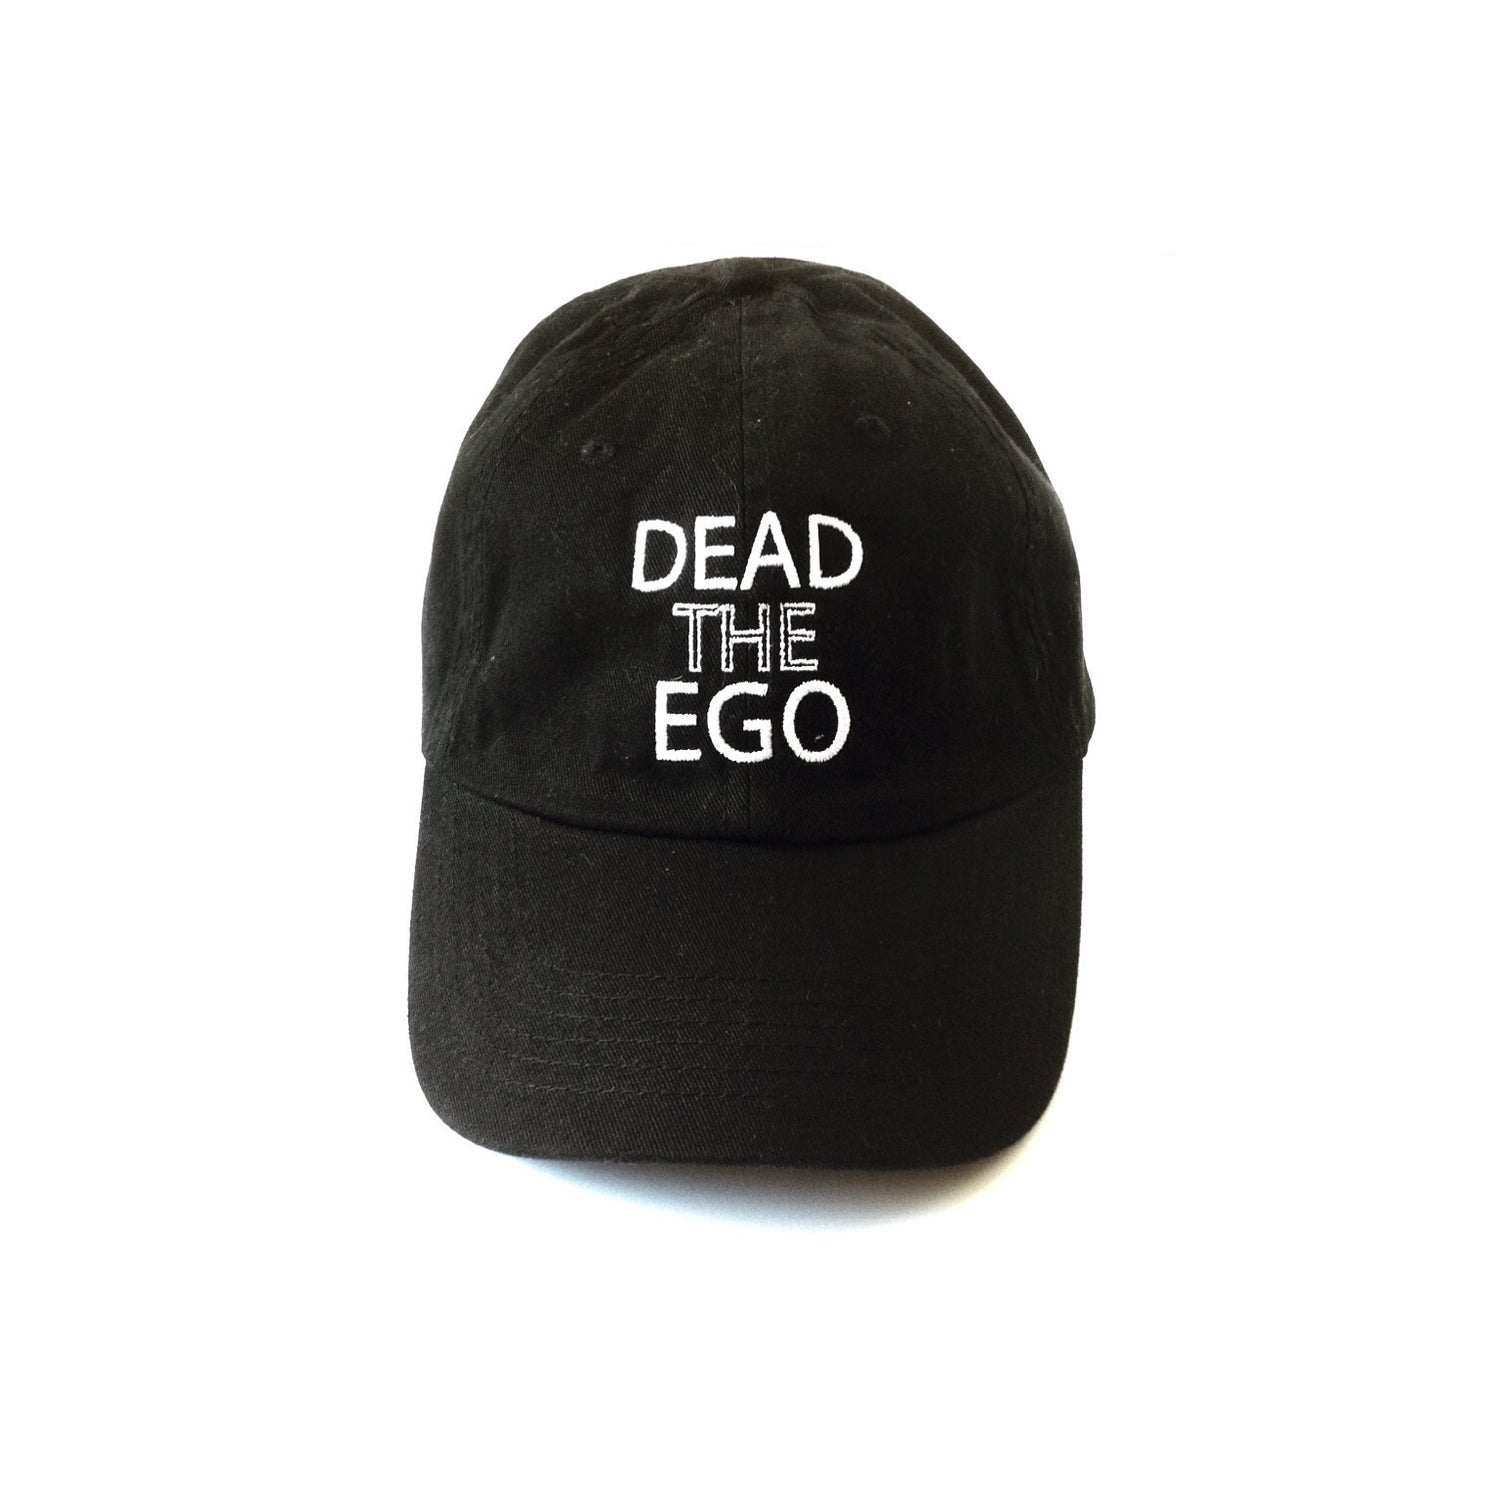 Image of KingNYC Dead The Ego Dad Cap